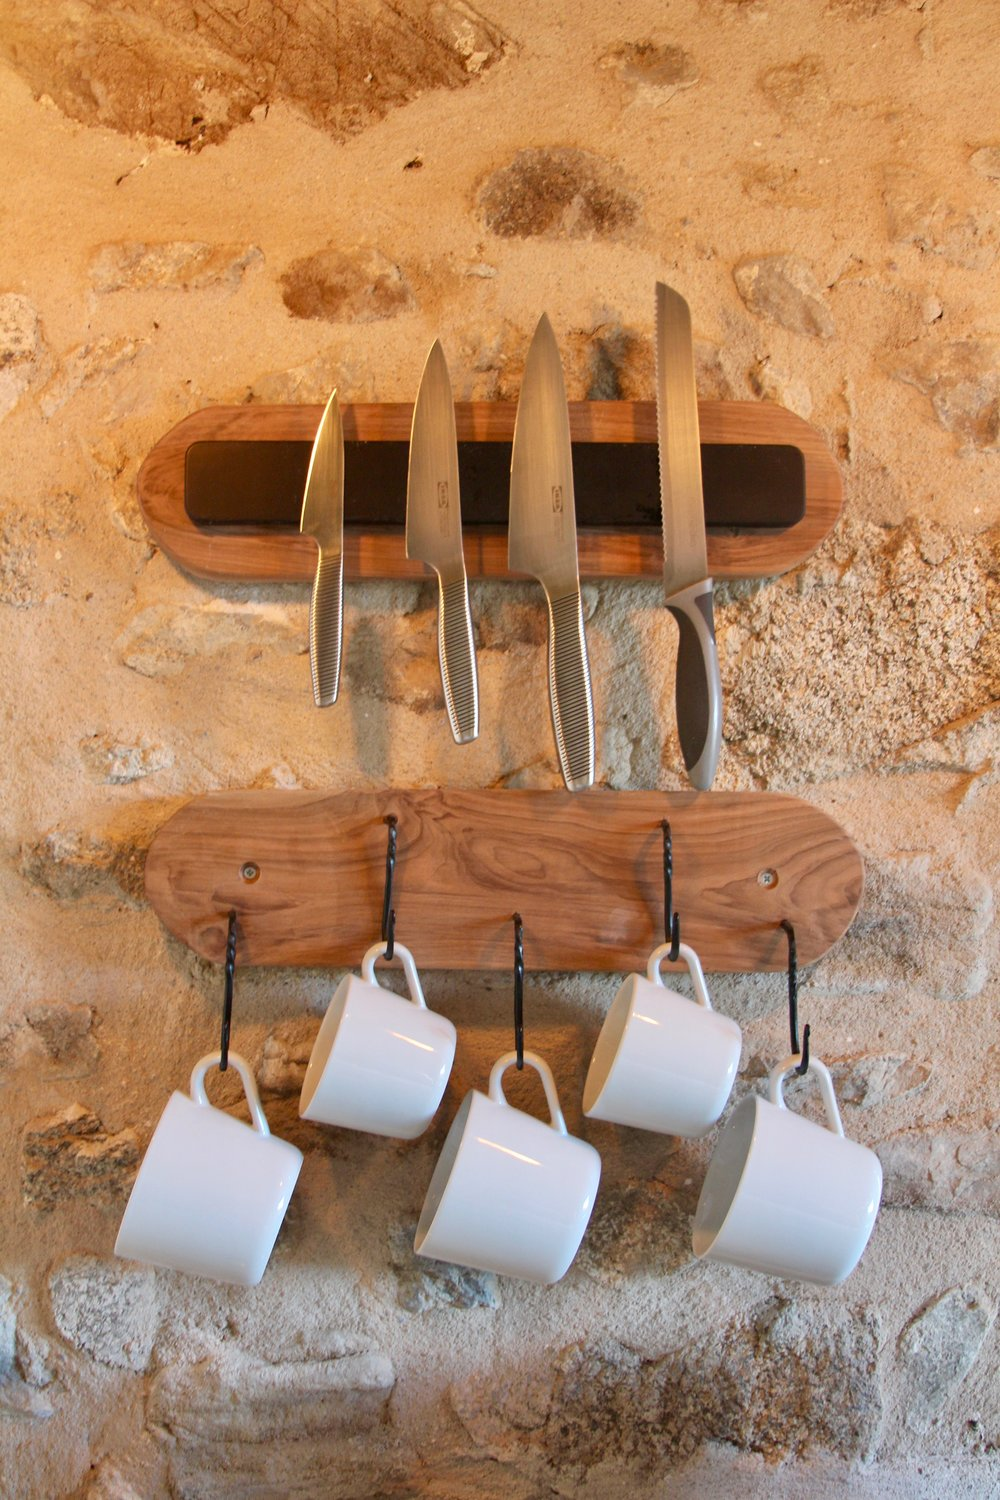 Knife magnet & mug rack